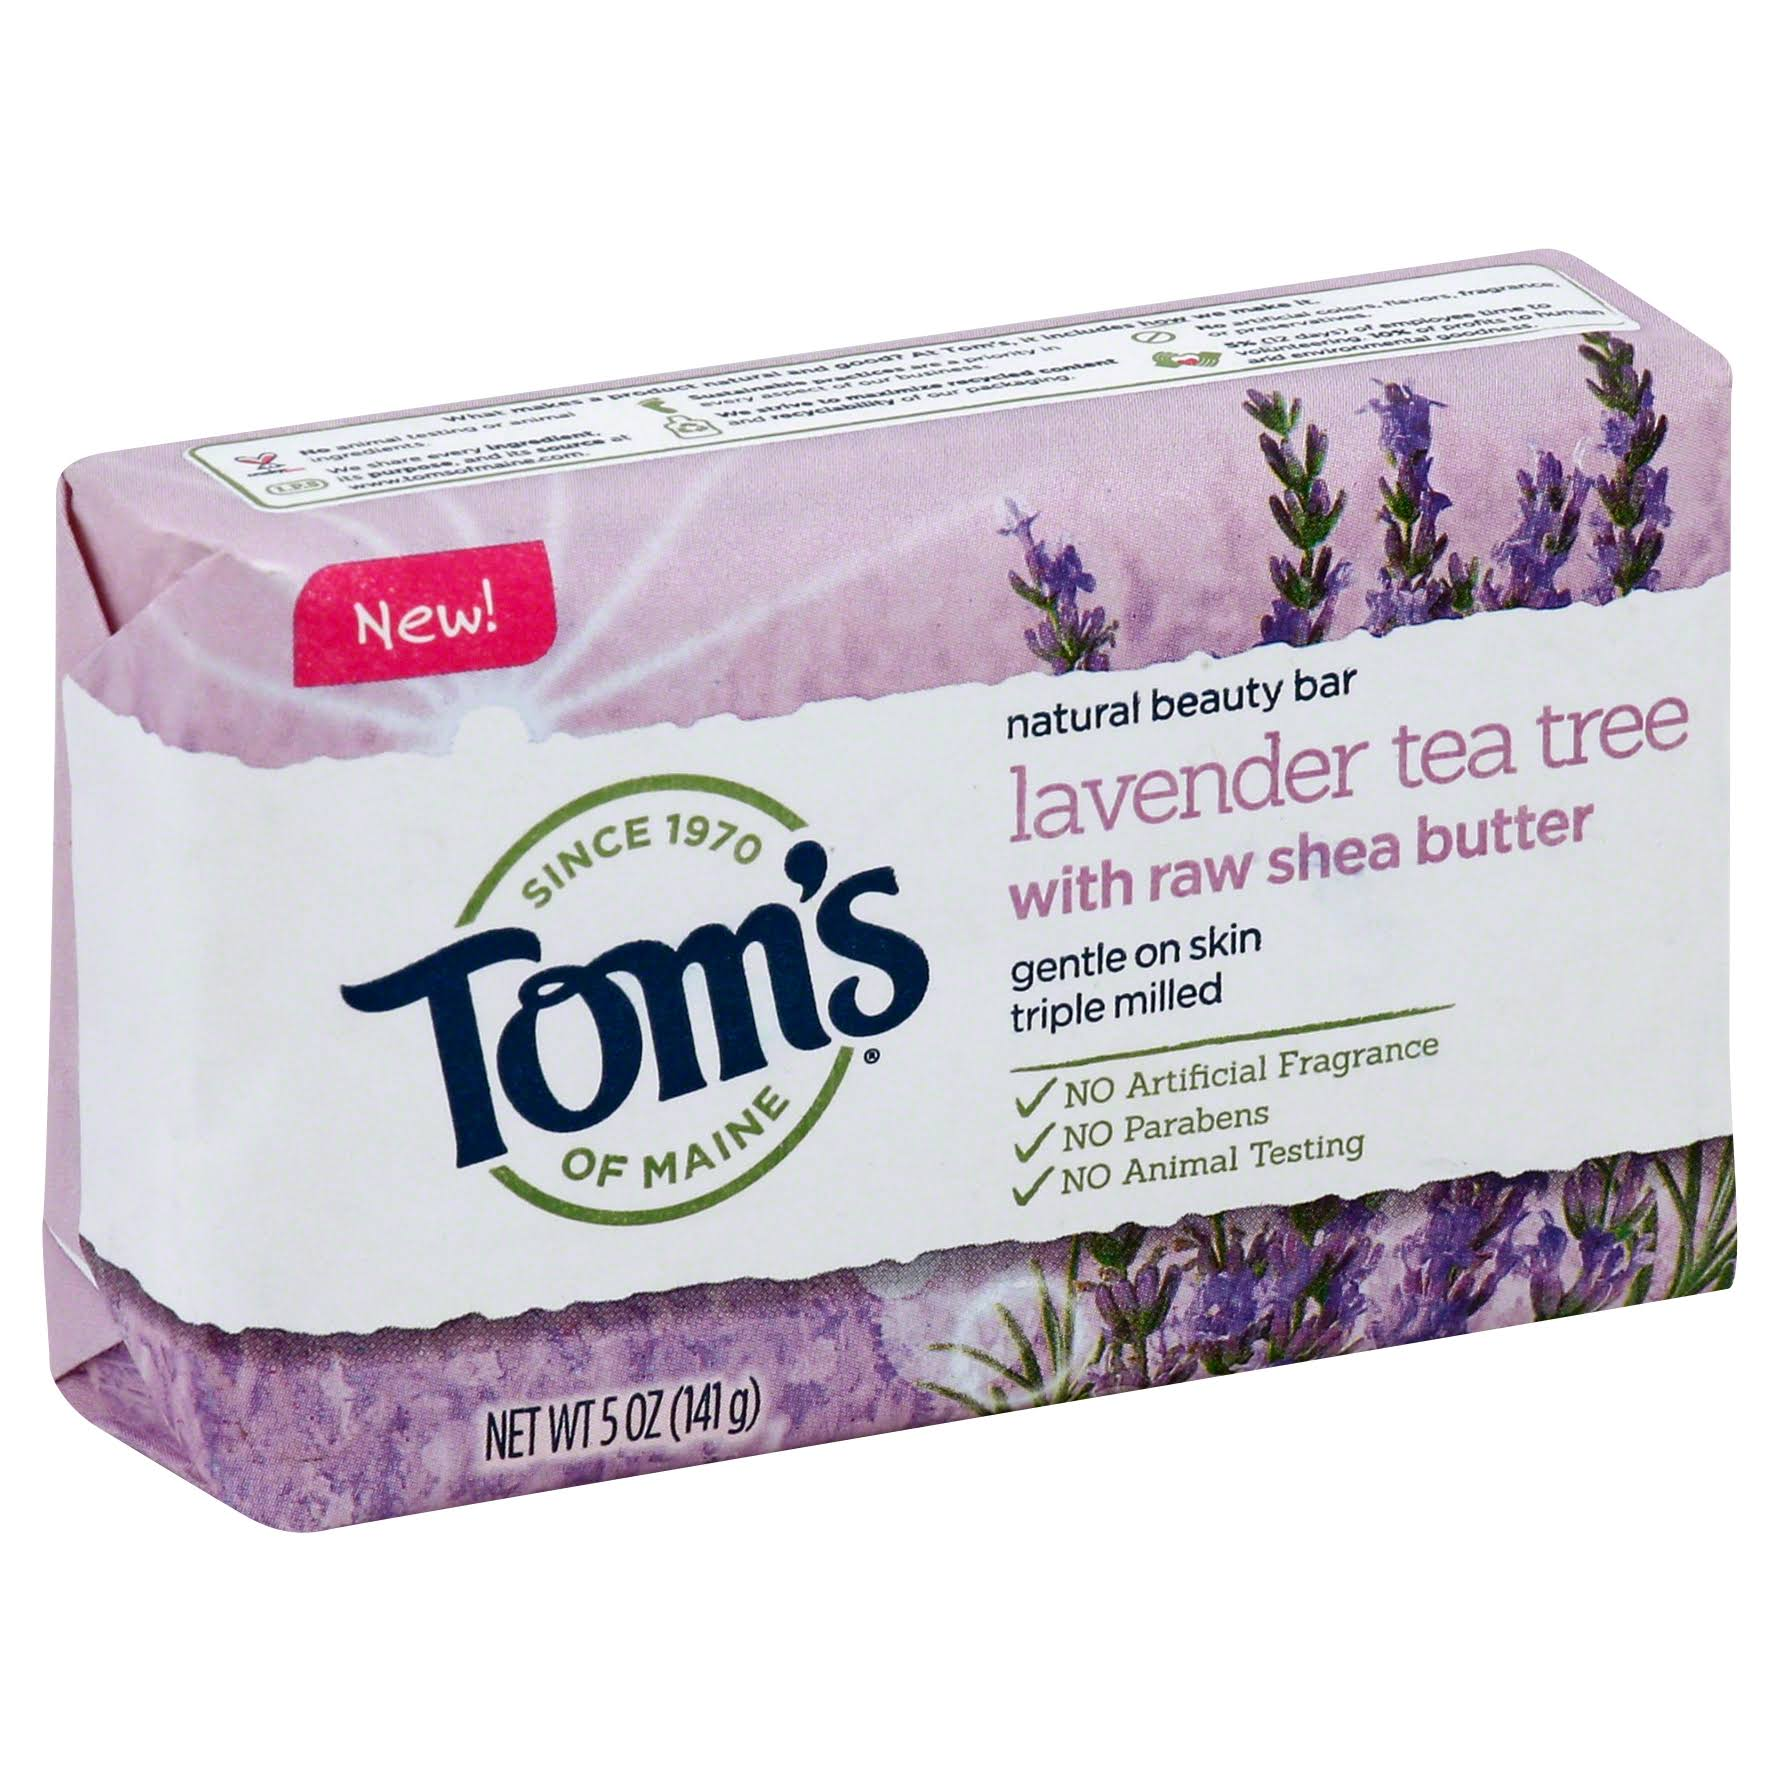 Tom's of Maine Natural Beauty Bar Soap with Raw Shea Butter - Lavender Tea Tree, 5oz